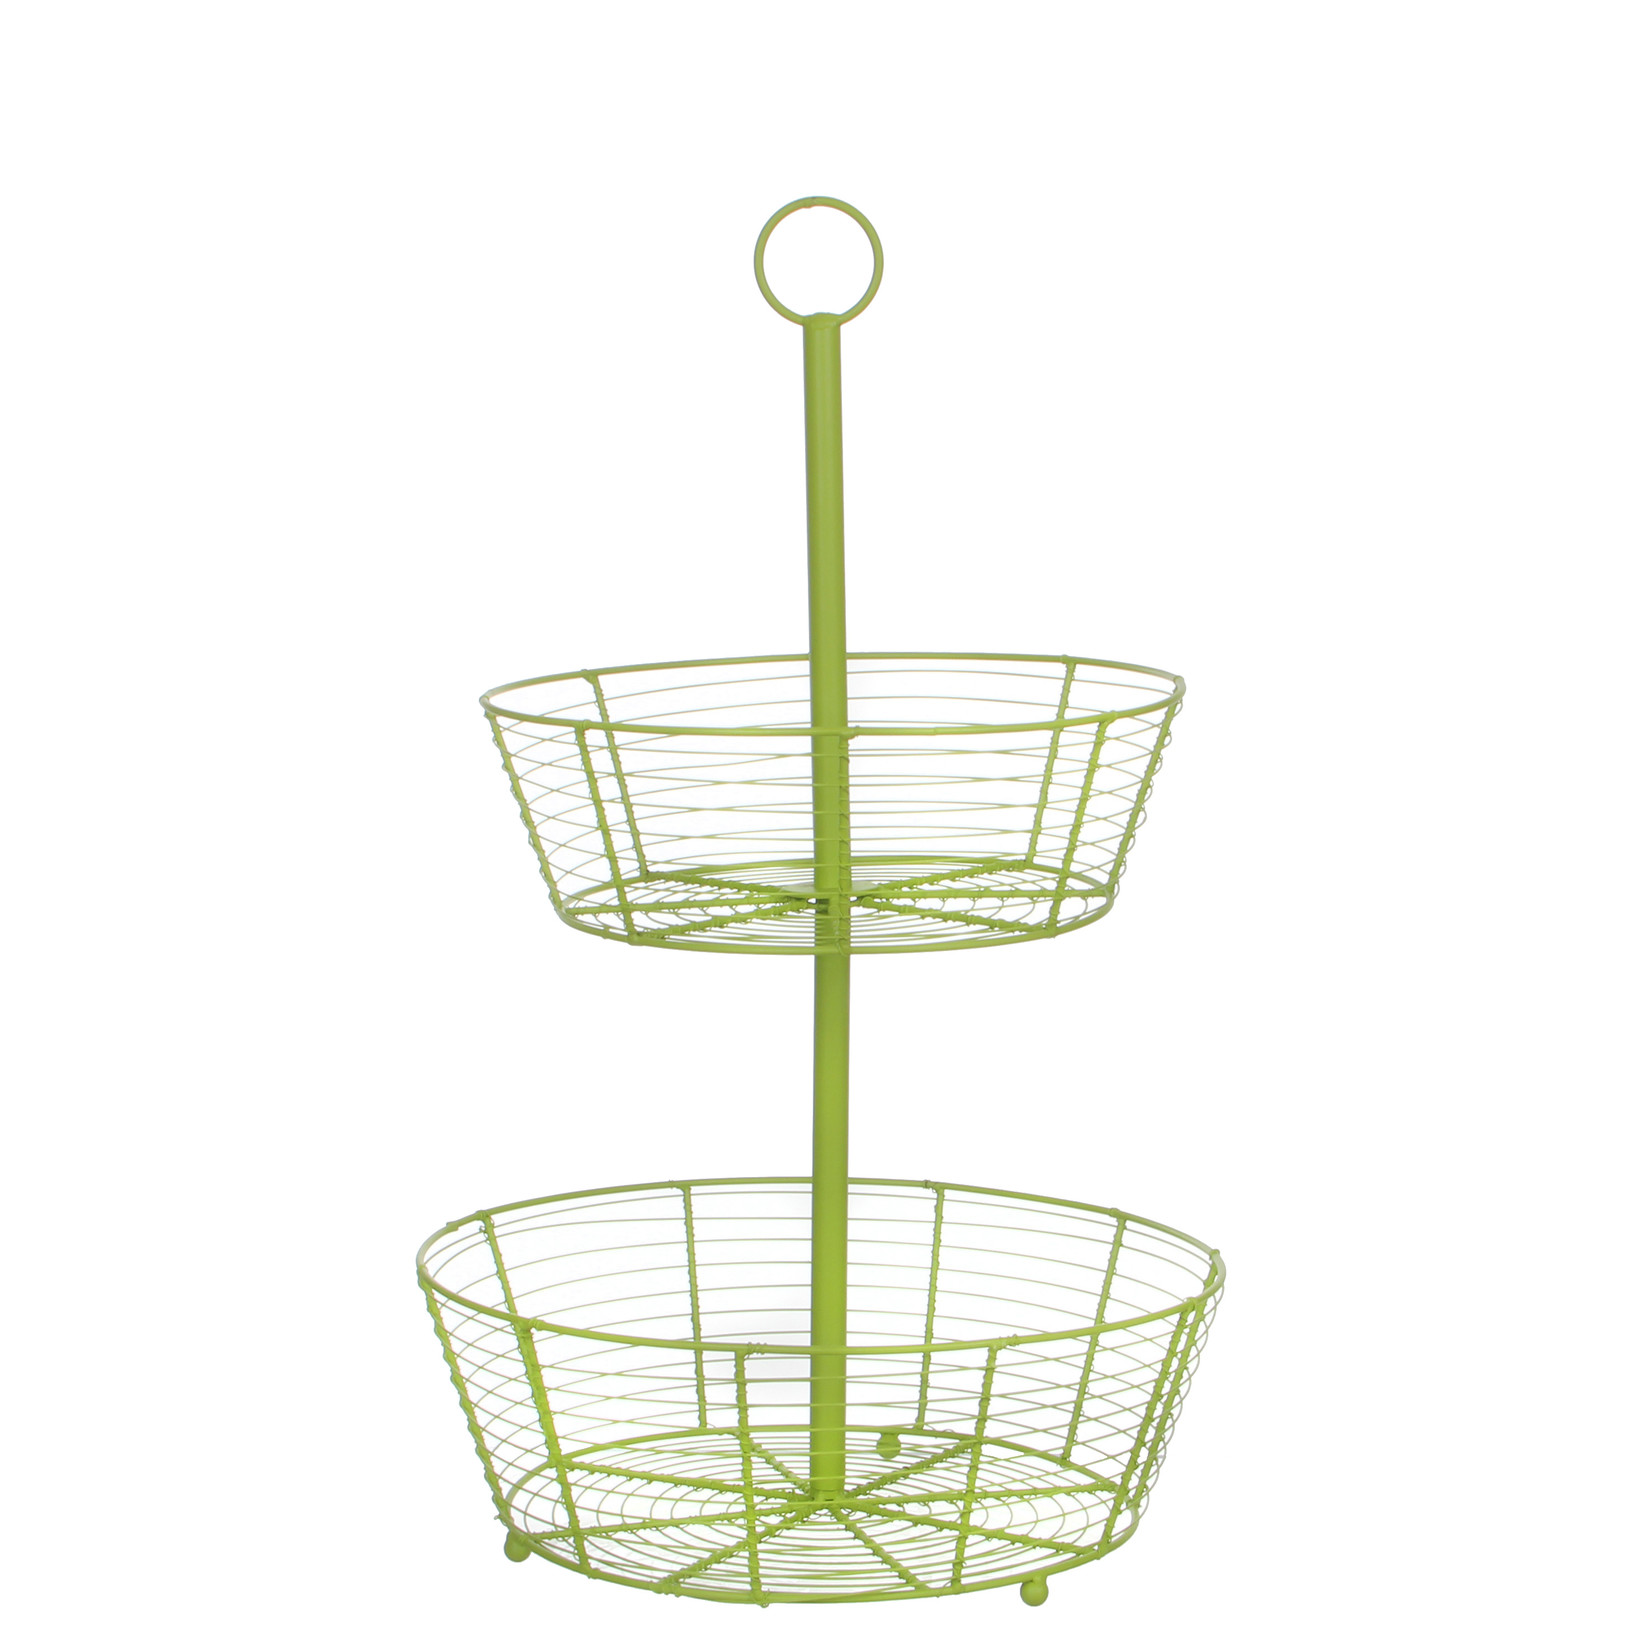 MiCa 1039465 Etagere green